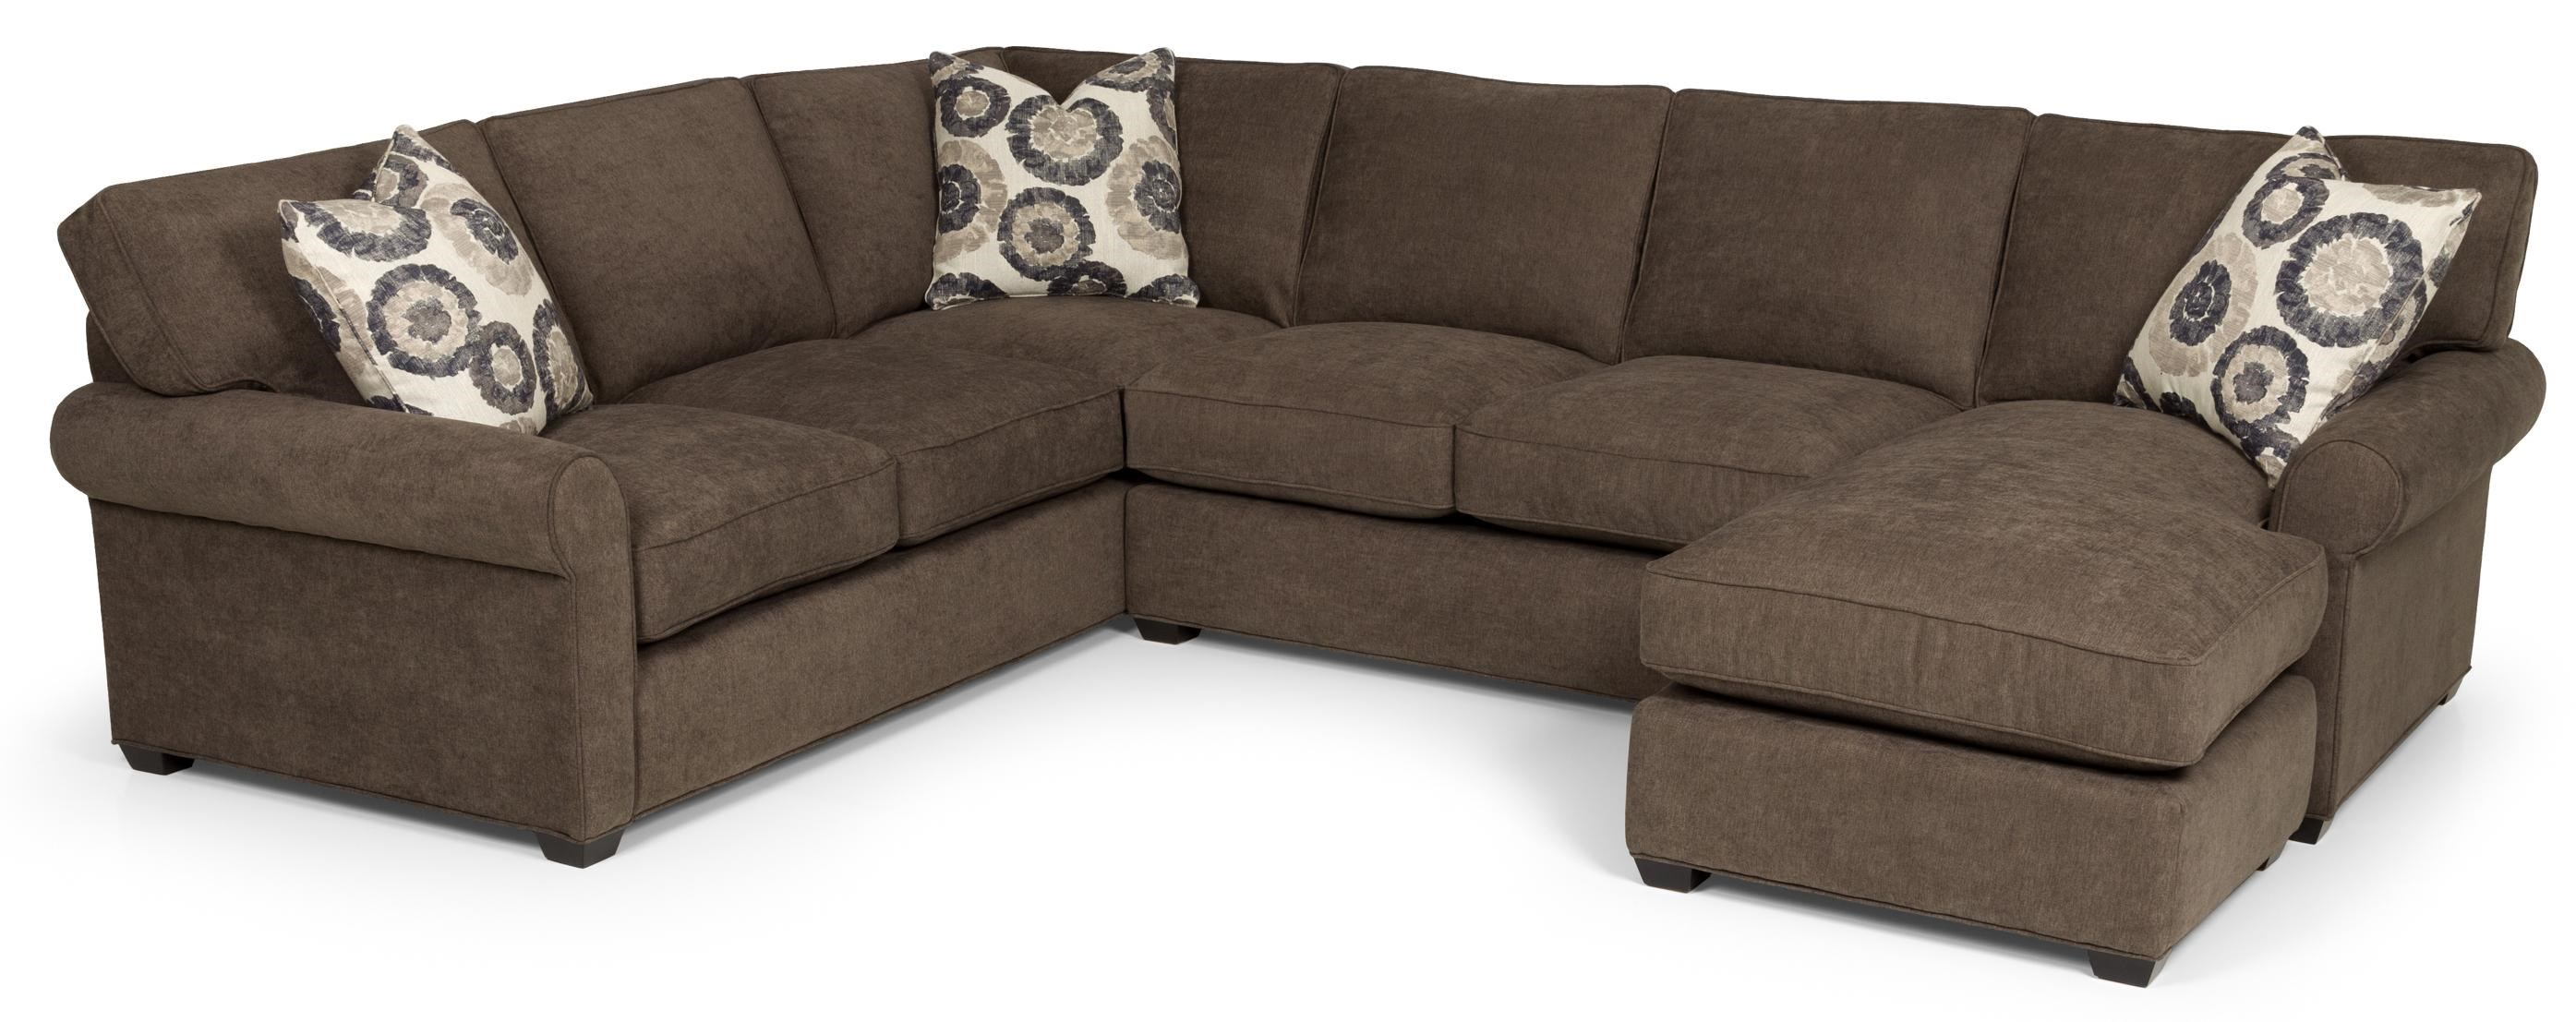 High Quality Sunset Home 225 Transitional 2 Piece Sectional Sofa With Chaise